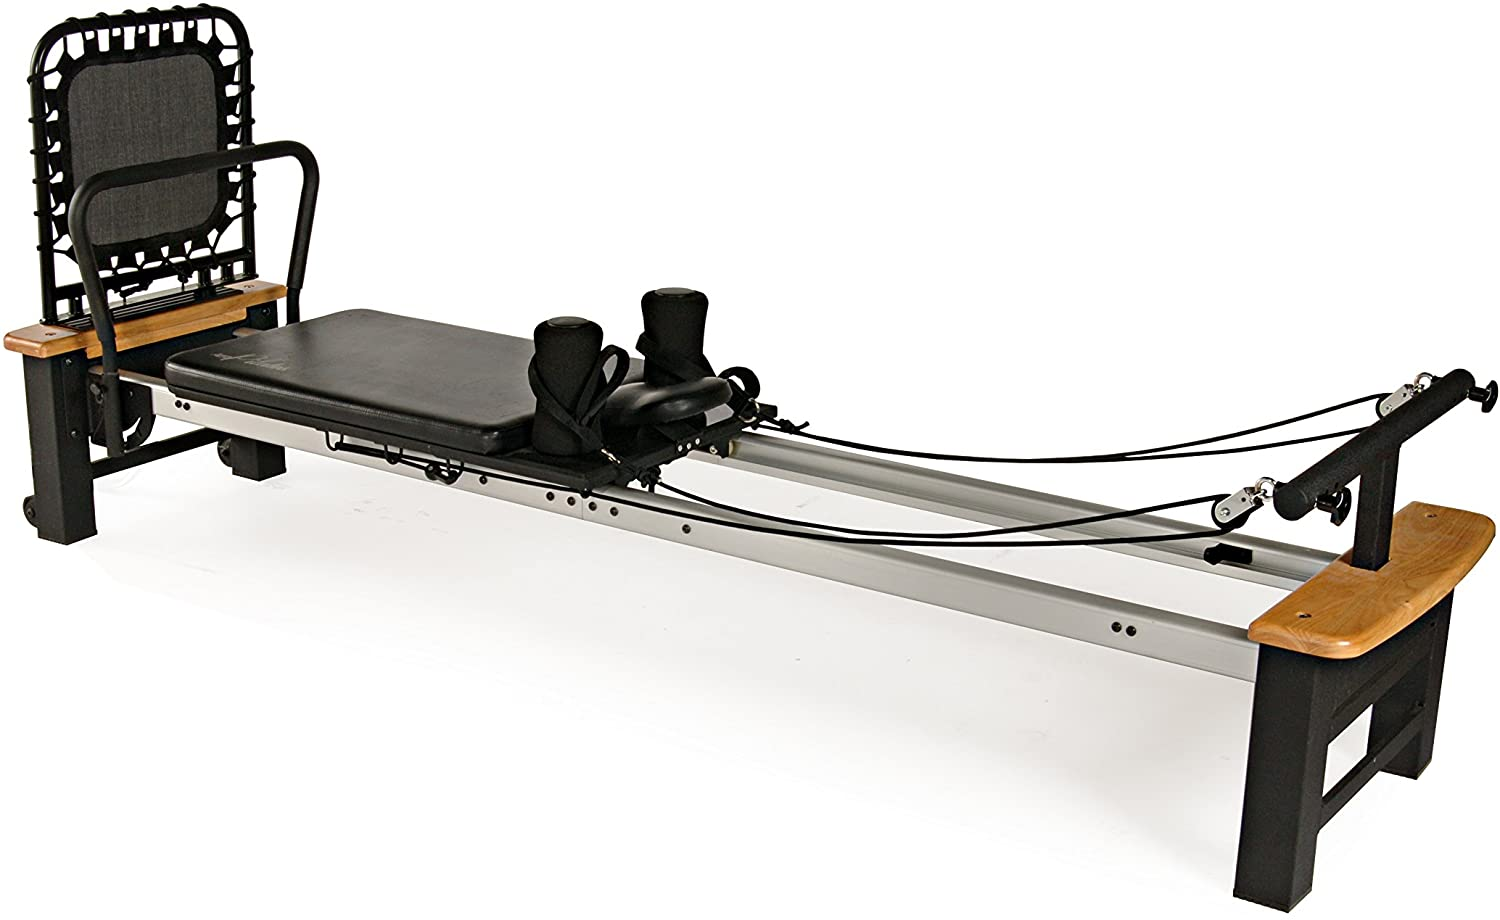 6. Stamina AeroPilates Pro XP556 | Home Pilates Machines